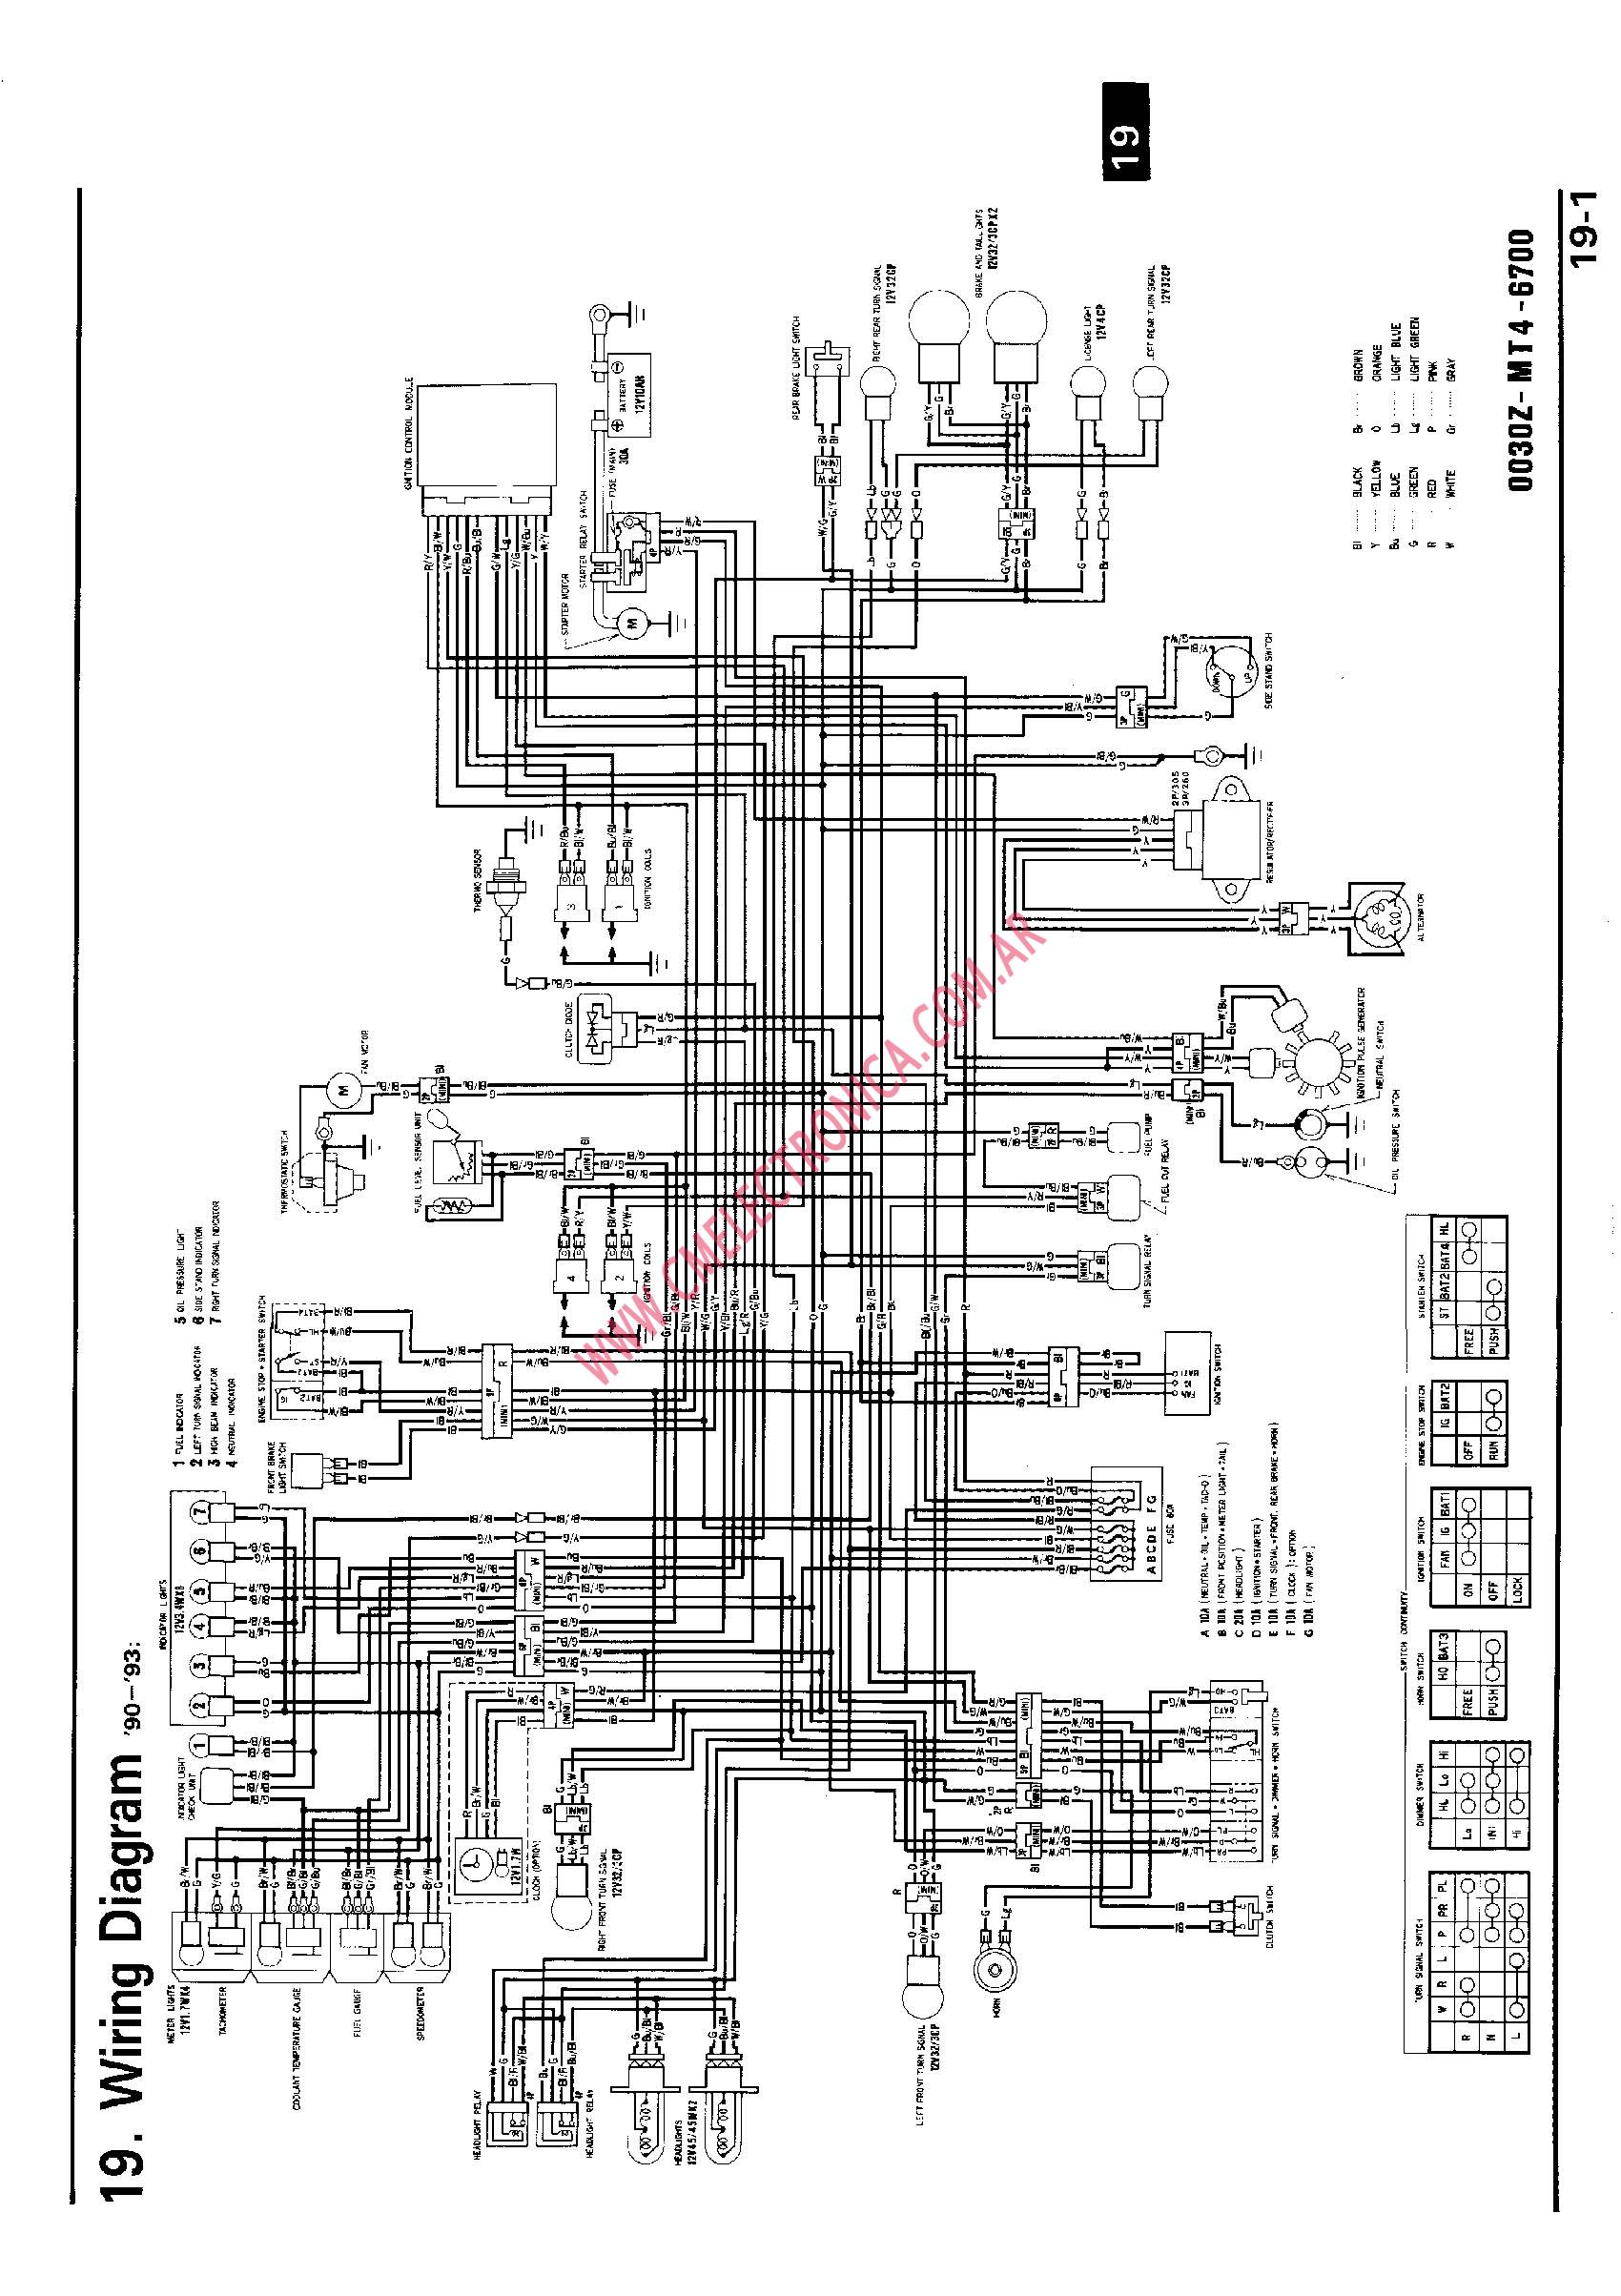 DIAGRAM] Mtd 600 Wiring Diagram FULL Version HD Quality Wiring Diagram -  10BTWIRING.CONCESSIONARIABELOGISENIGALLIA.ITconcessionariabelogisenigallia.it